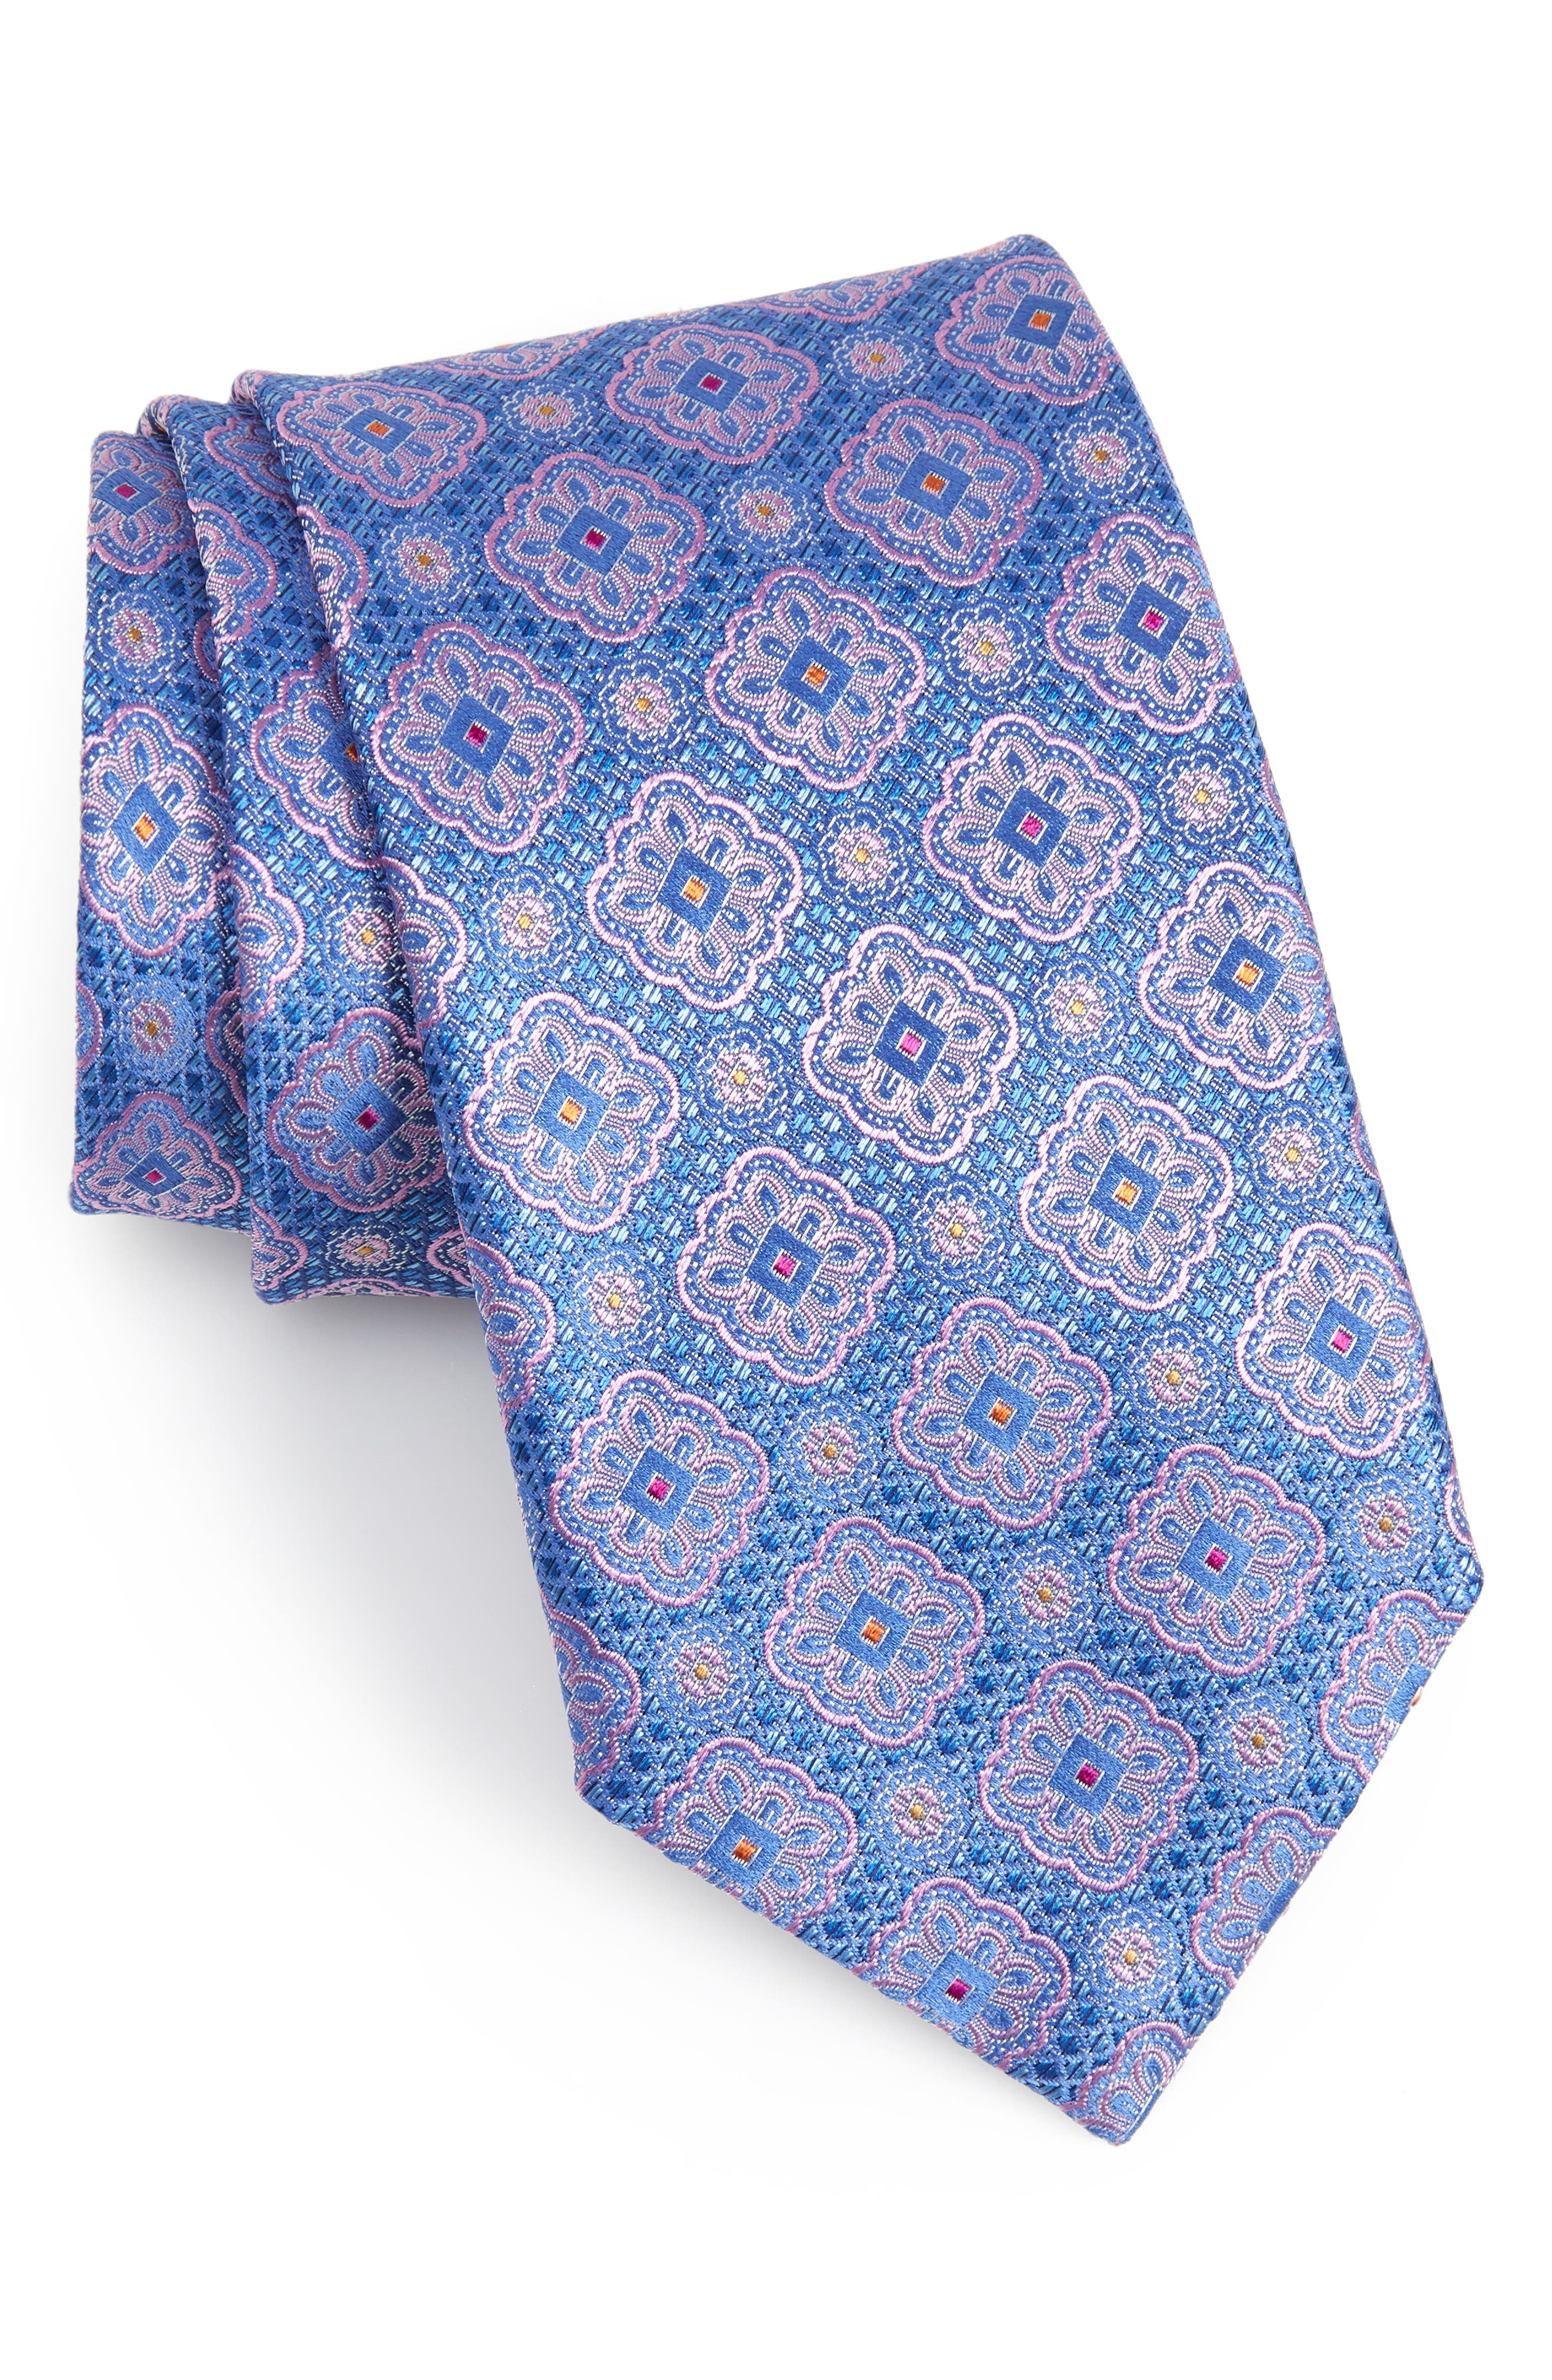 Medallion Silk Tie,                         Main,                         color, Bright Blue